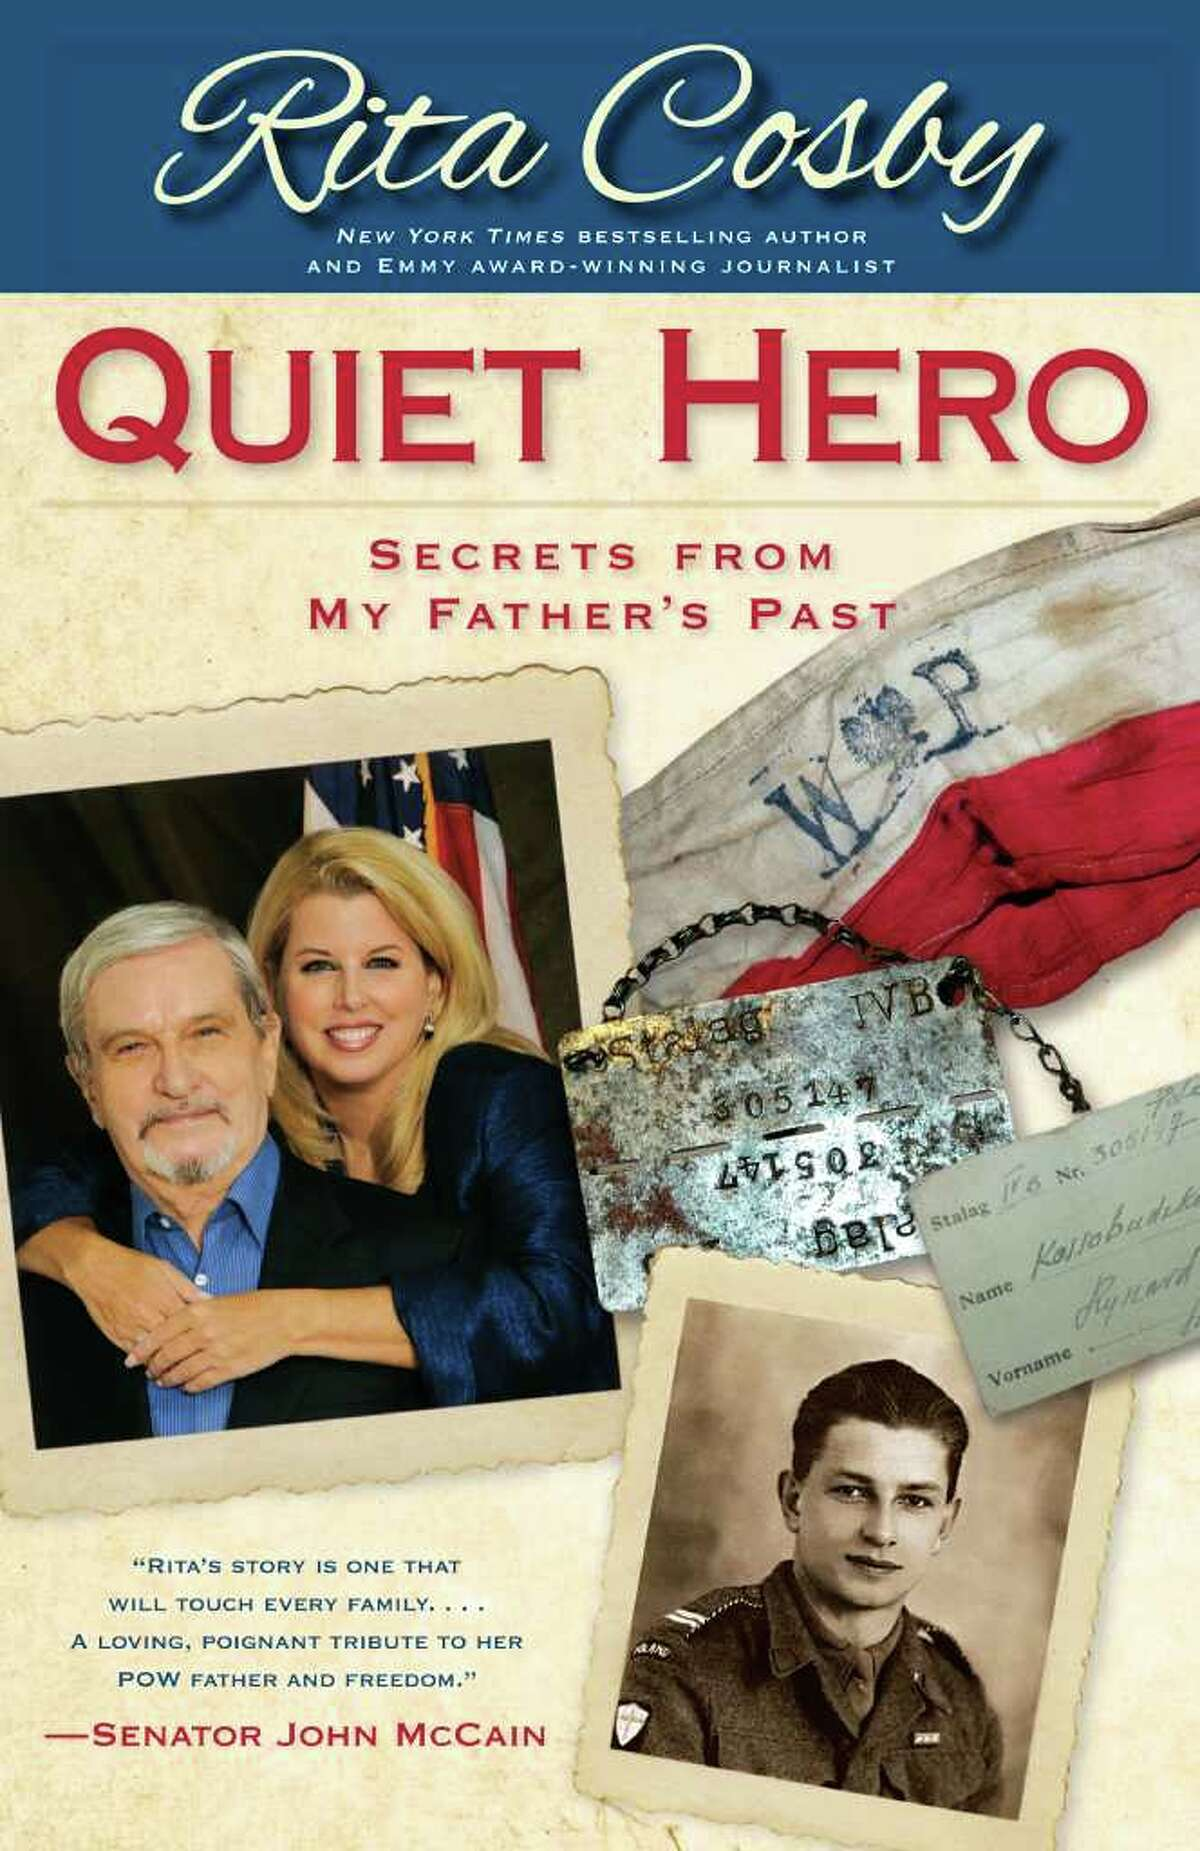 """Former Greenwich resident and Emmy Award-winning journalist Rita Cosby pays tribute to her father in her book """"Quiet Hero: Secrets From My Father's Past."""""""